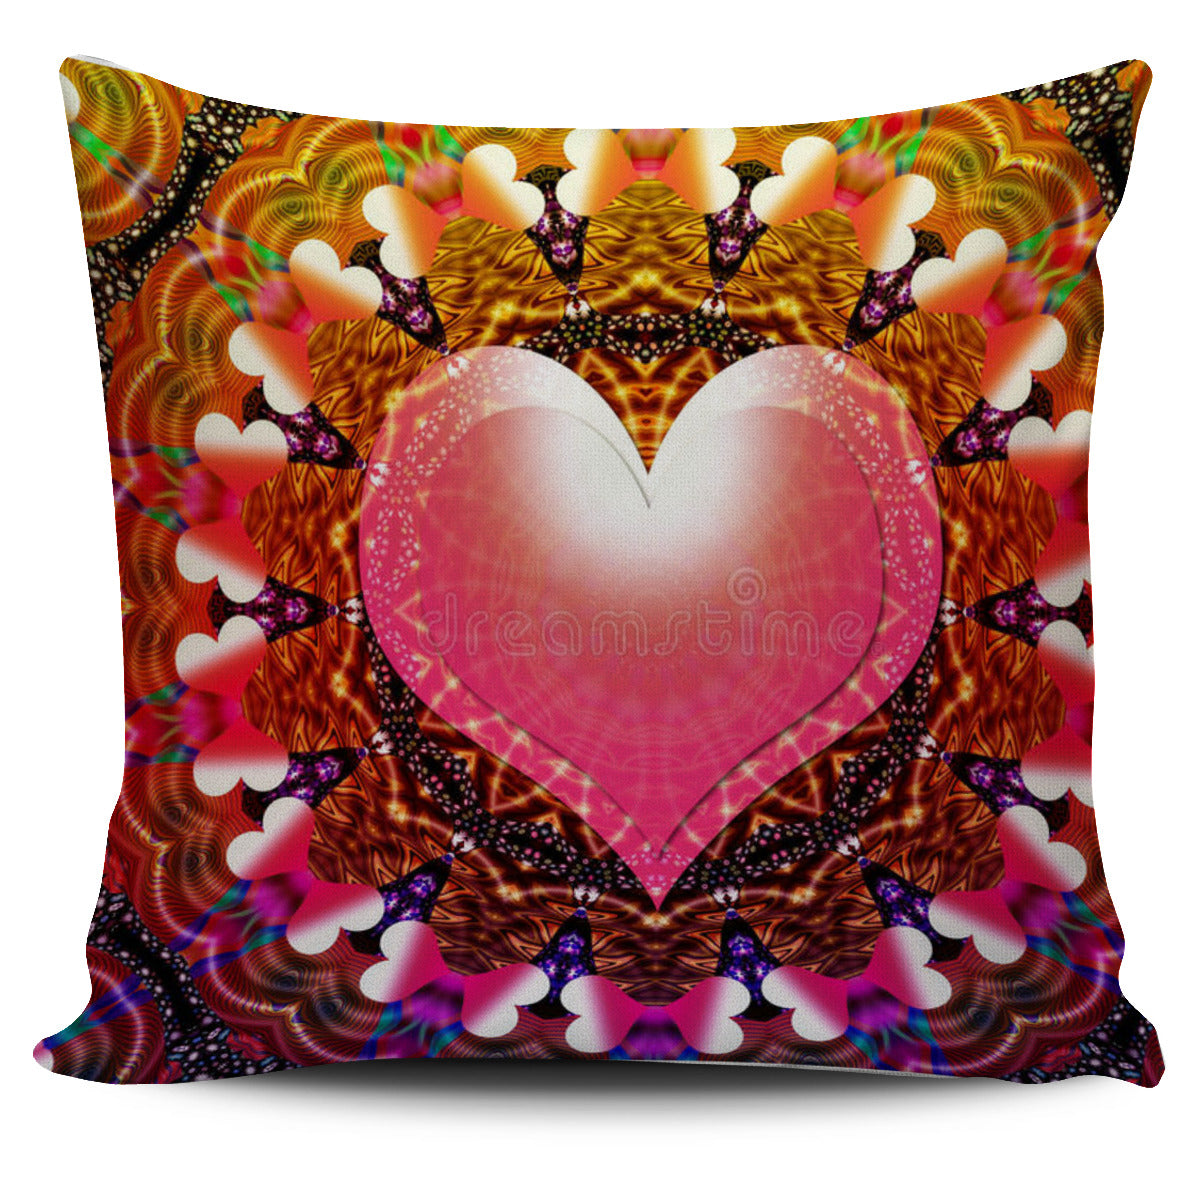 Mandela Pillow - Heart - OMG I Really Want That